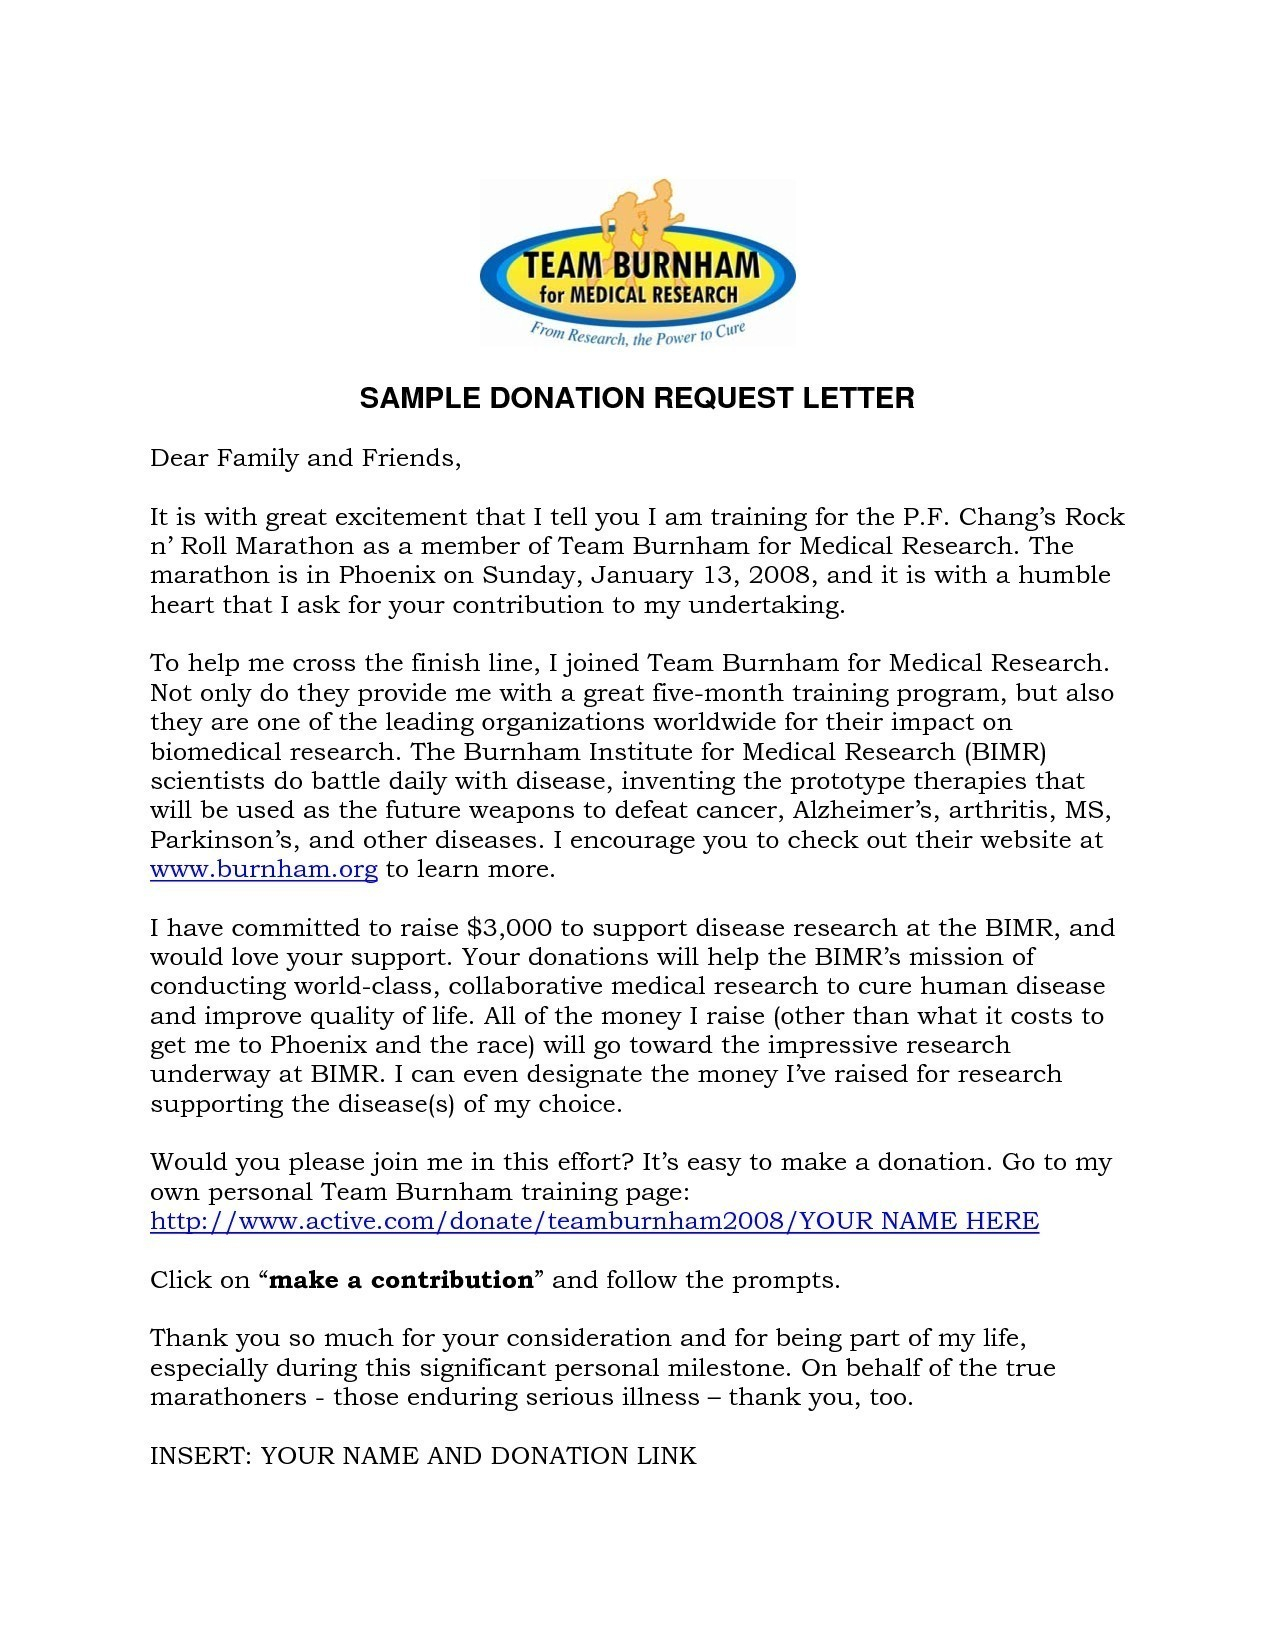 Template Letter Requesting Donations for Fundraiser - Samples Letters Request Donation New Sample Letters for Request for